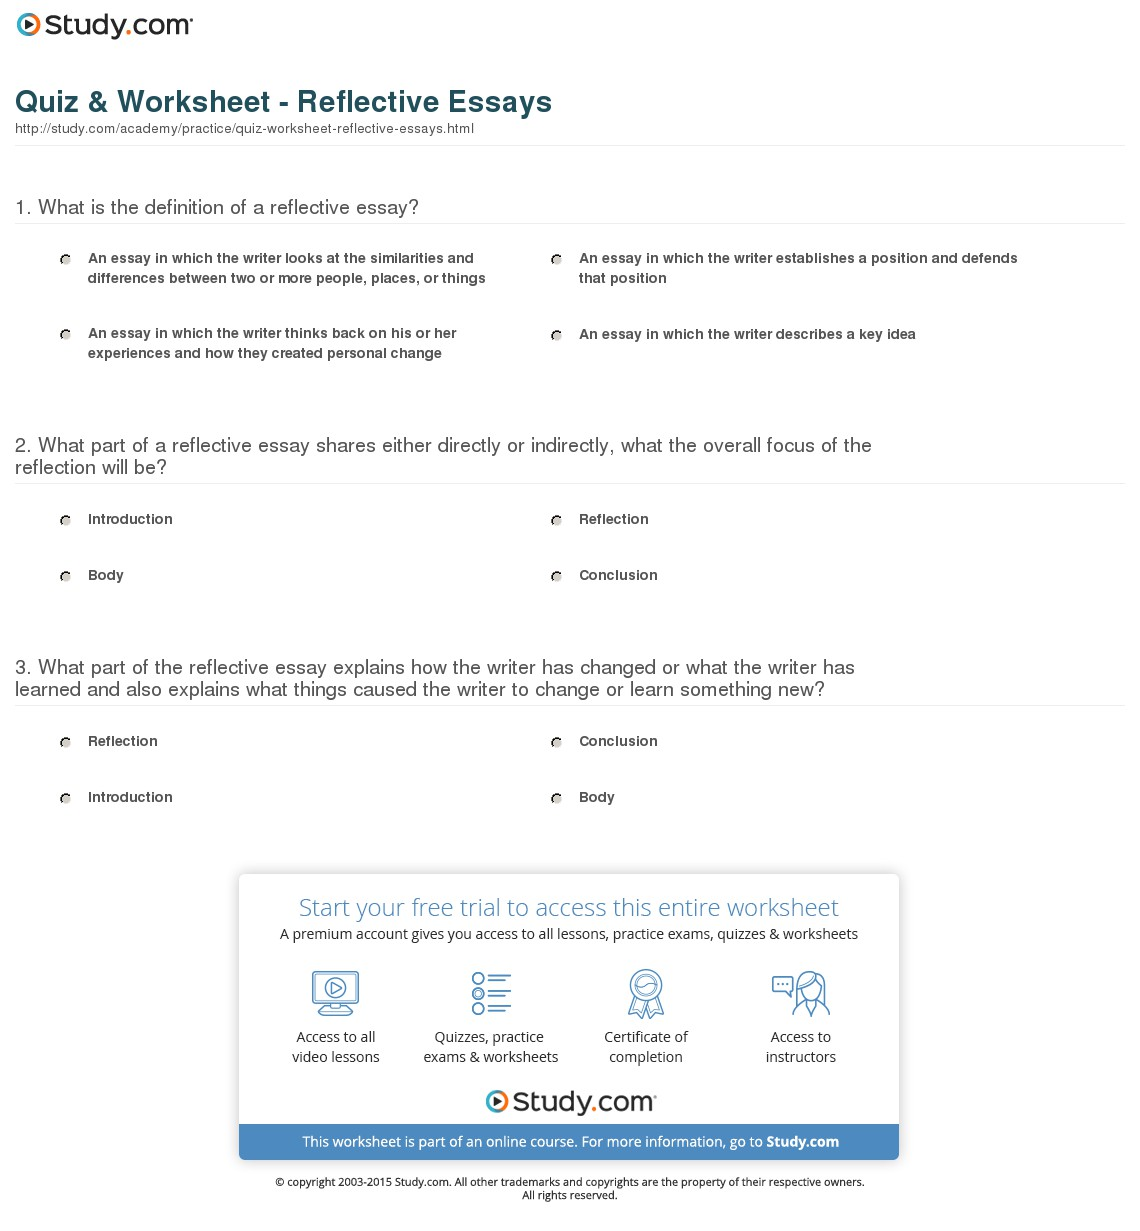 005 Essay Example What Is Reflective Quiz Worksheet Remarkable A Ppt Self Full